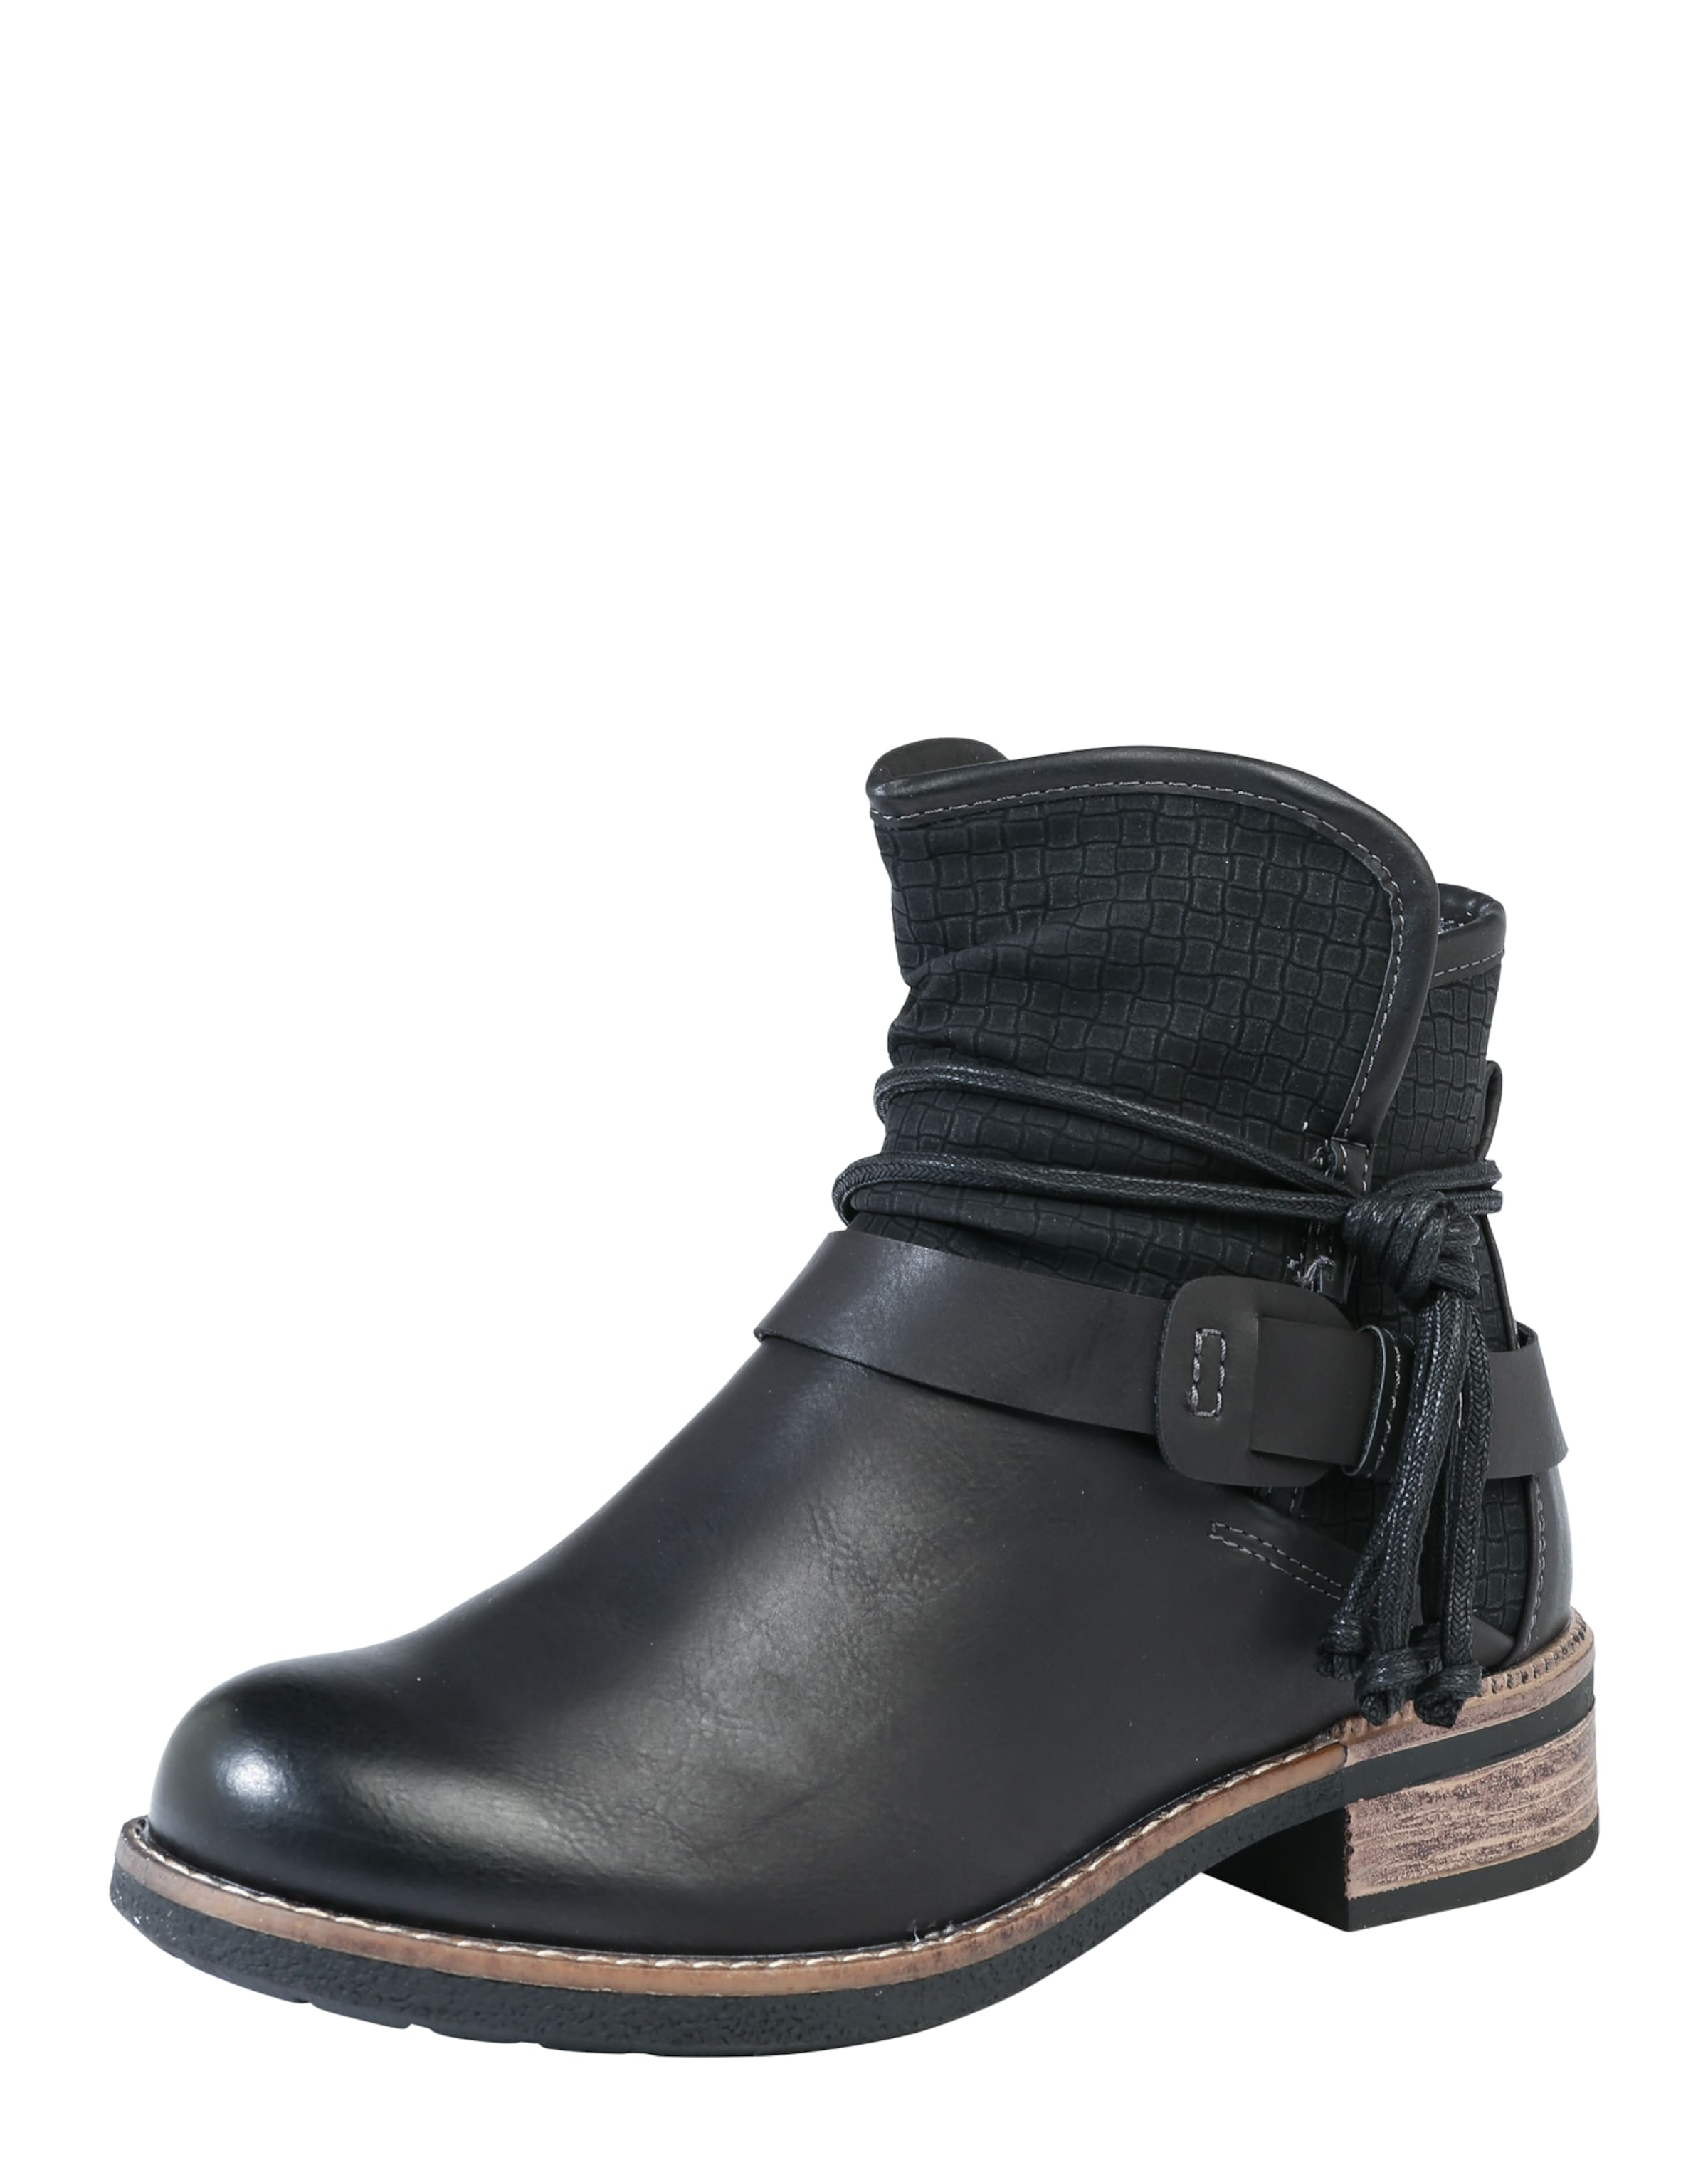 RIEKER Stiefelette in Leder-Optik